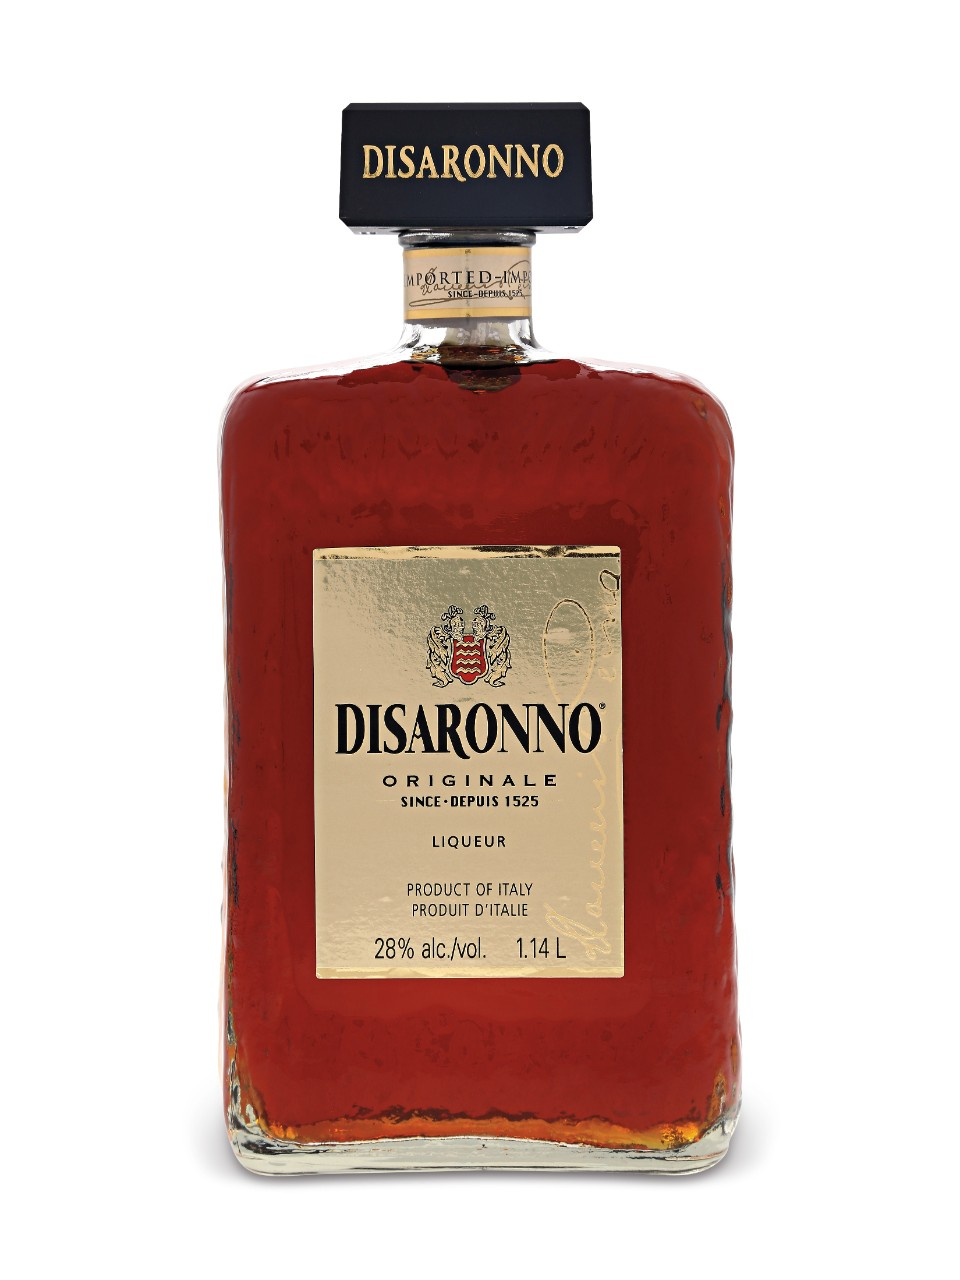 Disaronno Originale Amaretto from LCBO